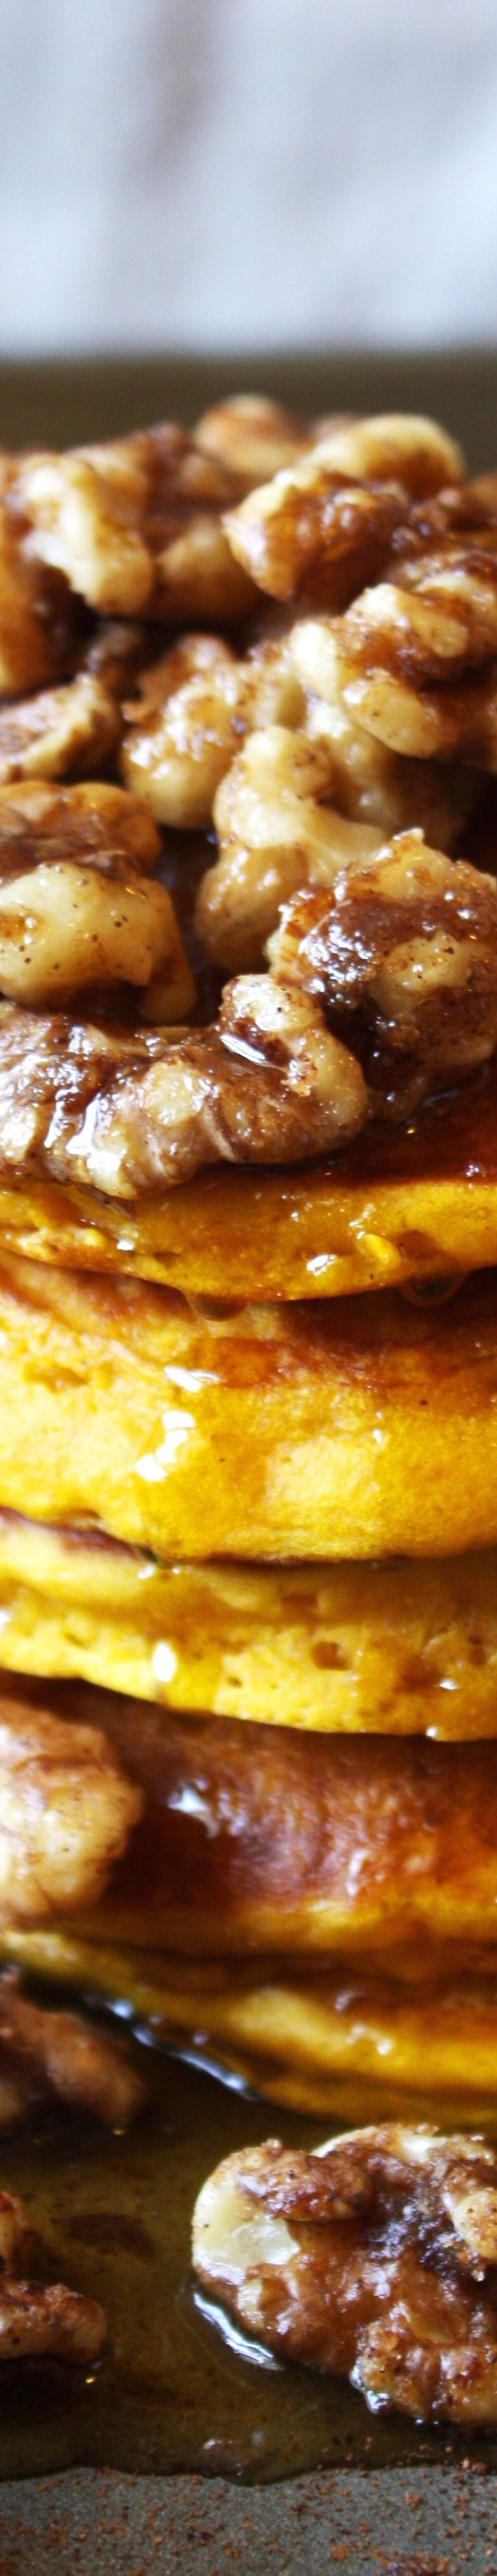 Pumpkin, Maple Pancakes with Brown Sugar Spiced Walnuts